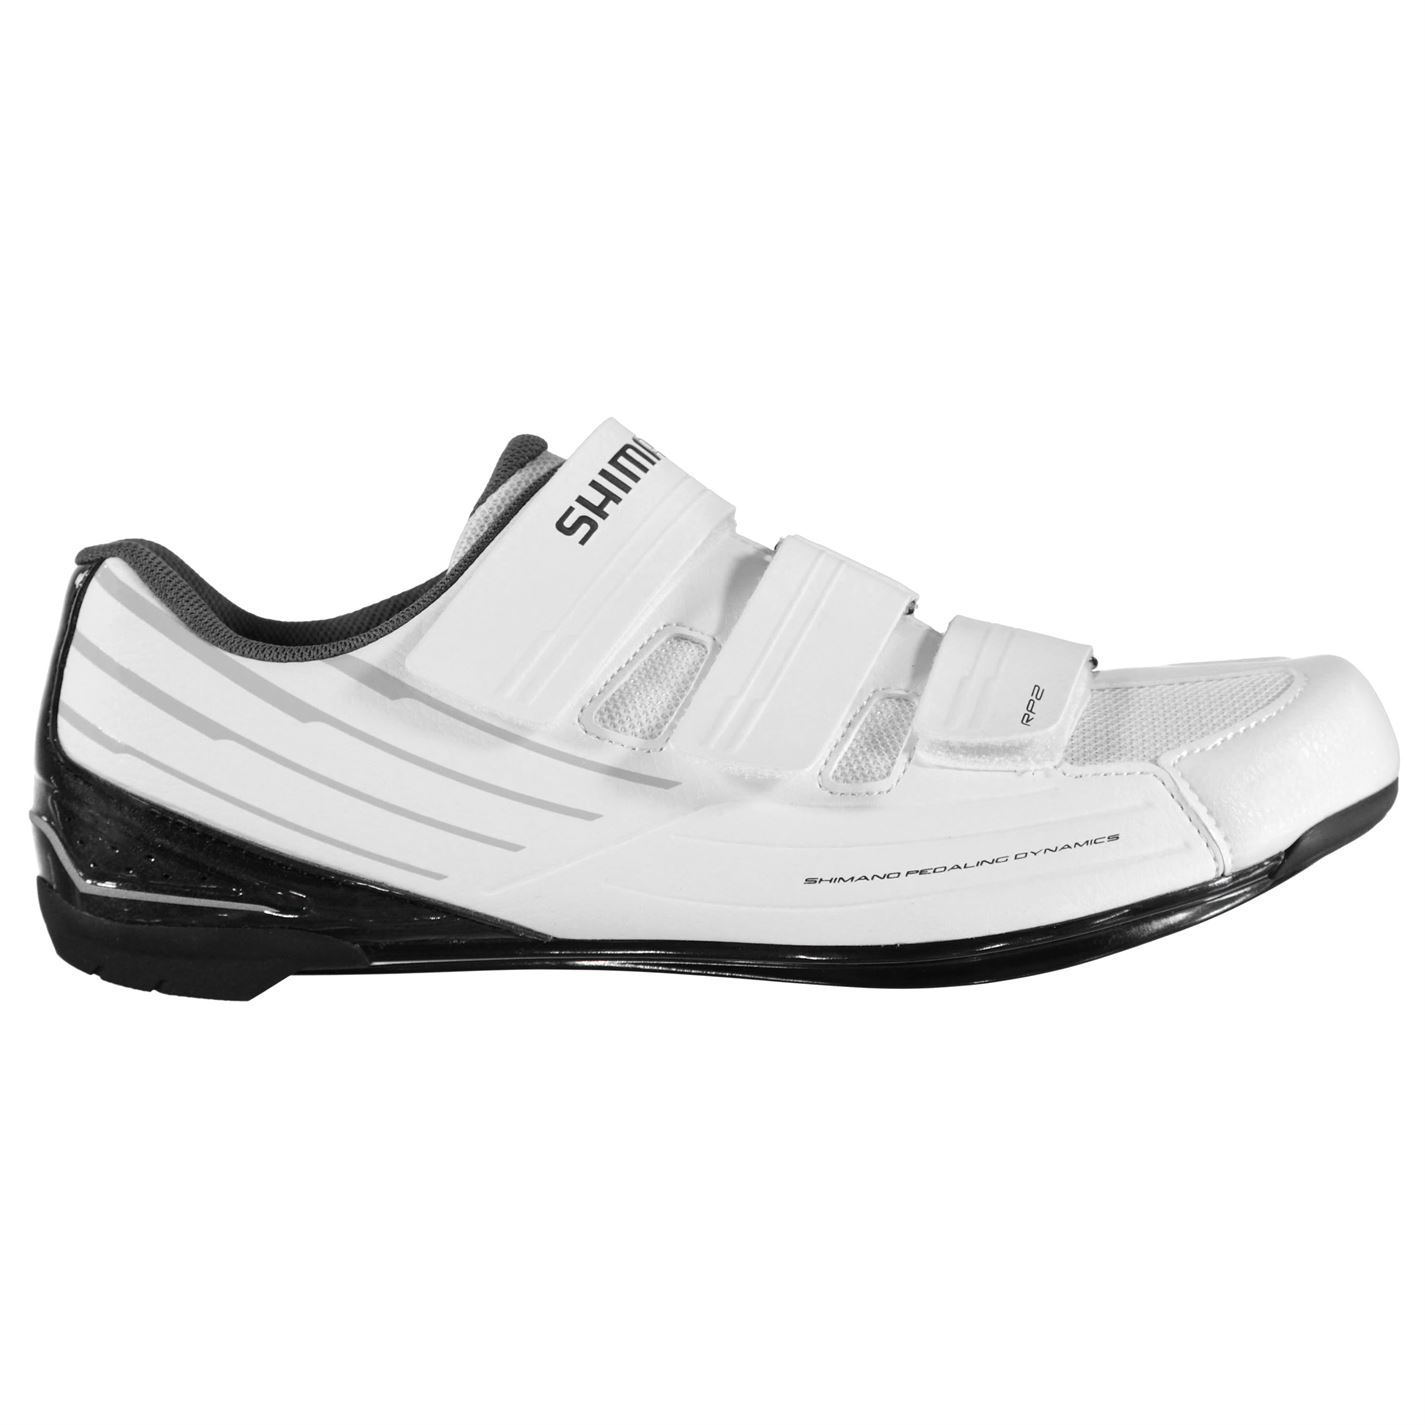 Shimano RP2 SPD SL Cycling Schuhes  Herren Gents Gents Gents - Road Padded Ankle Collar Strap 27a4a1